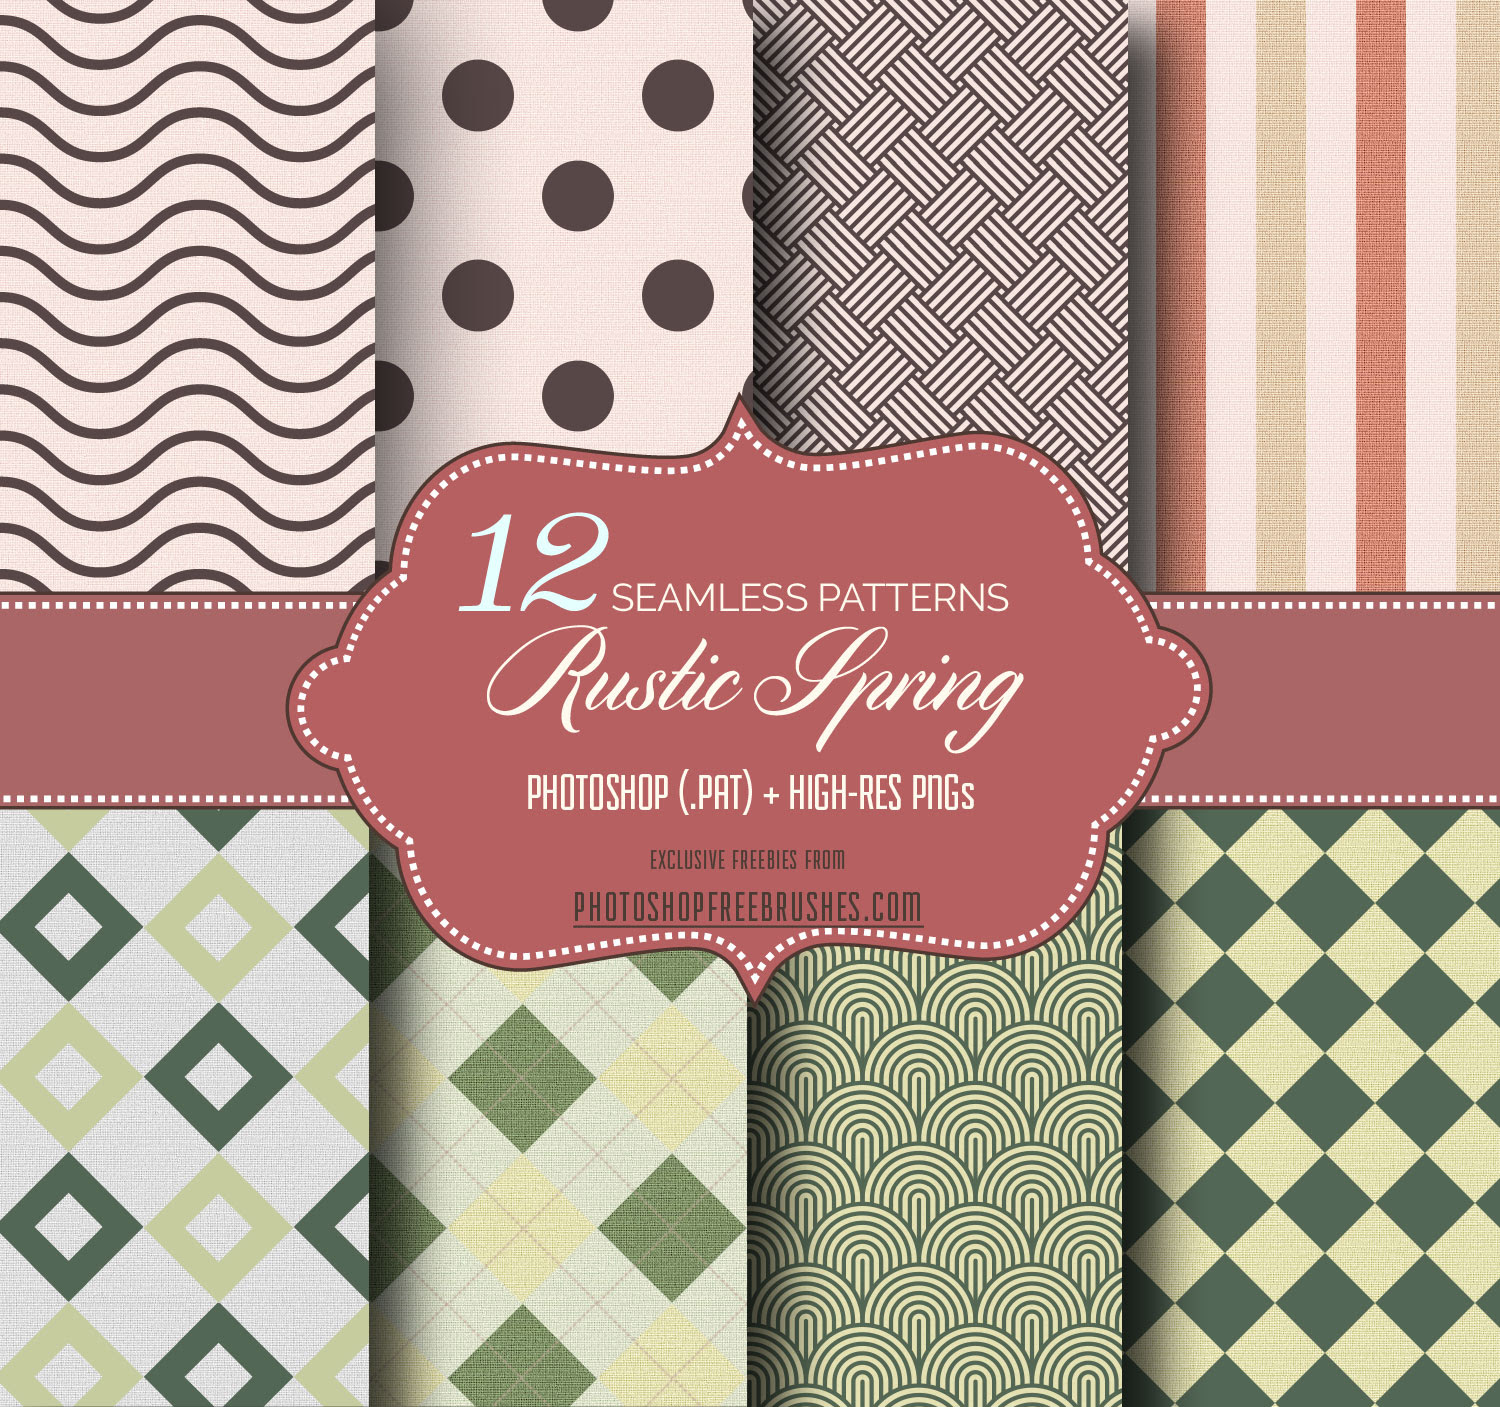 Rustic Spring Seamless Patterns in Burlap Background